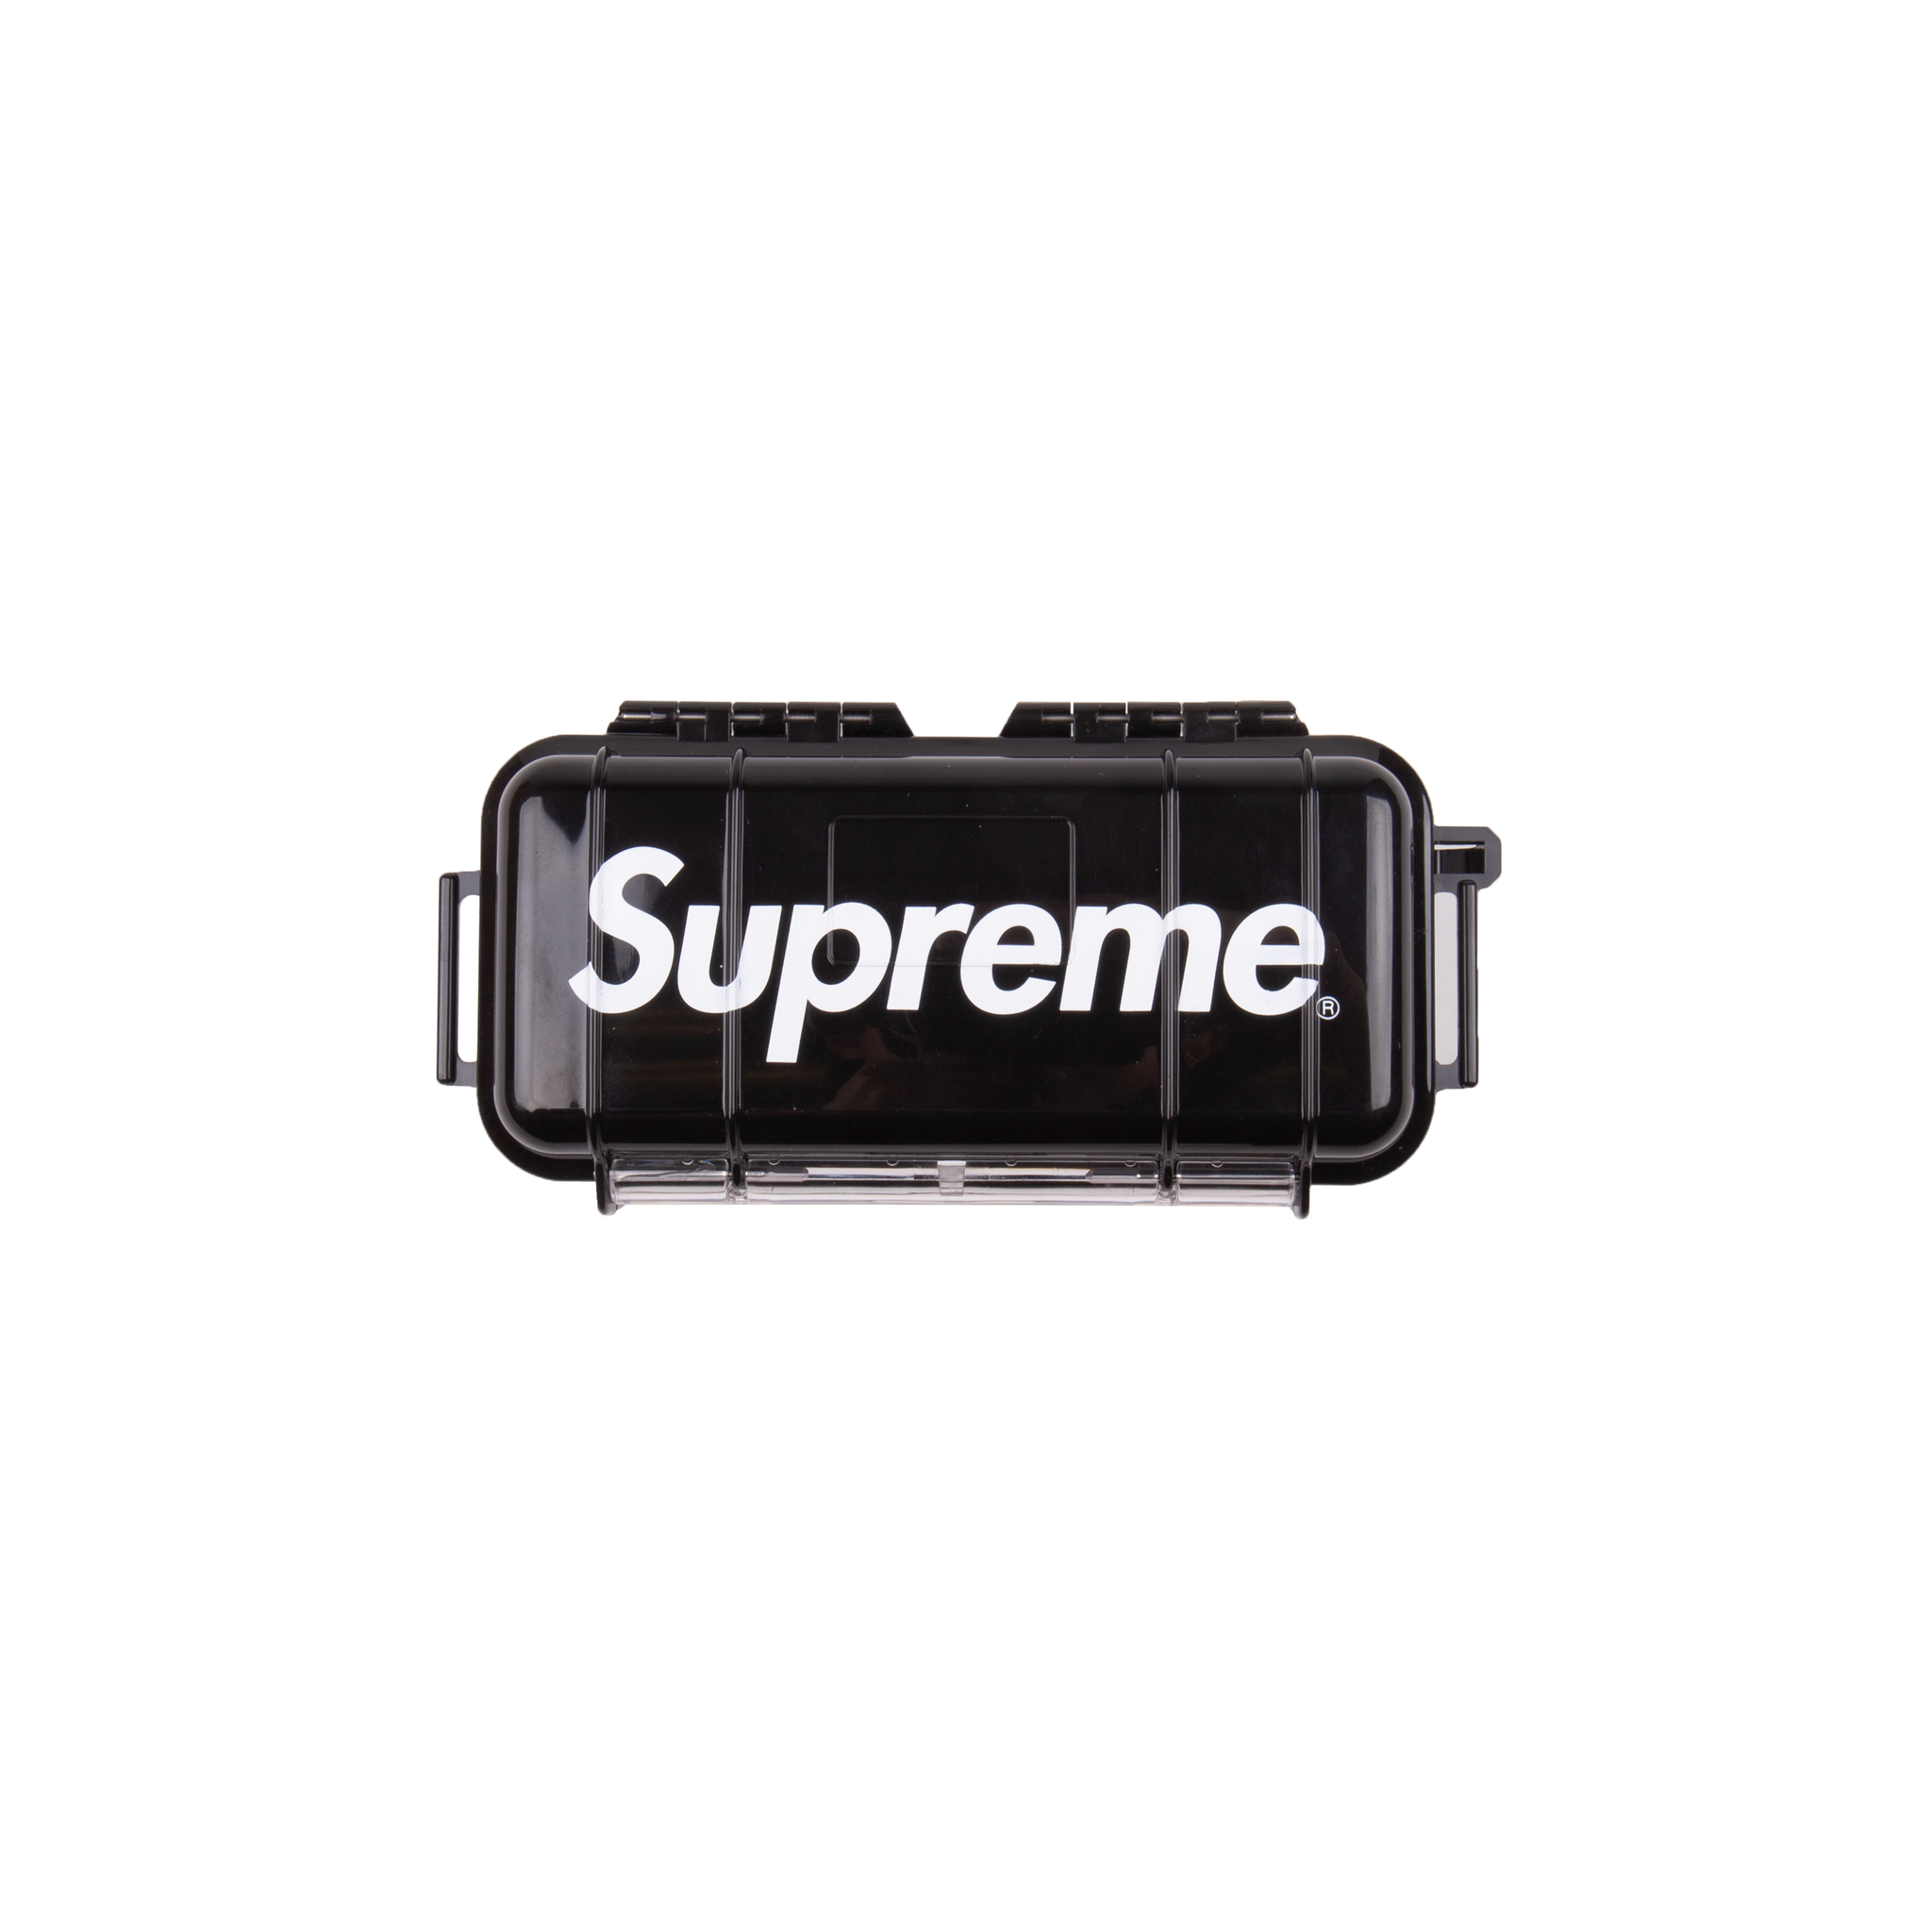 Supreme Black Pelican Case